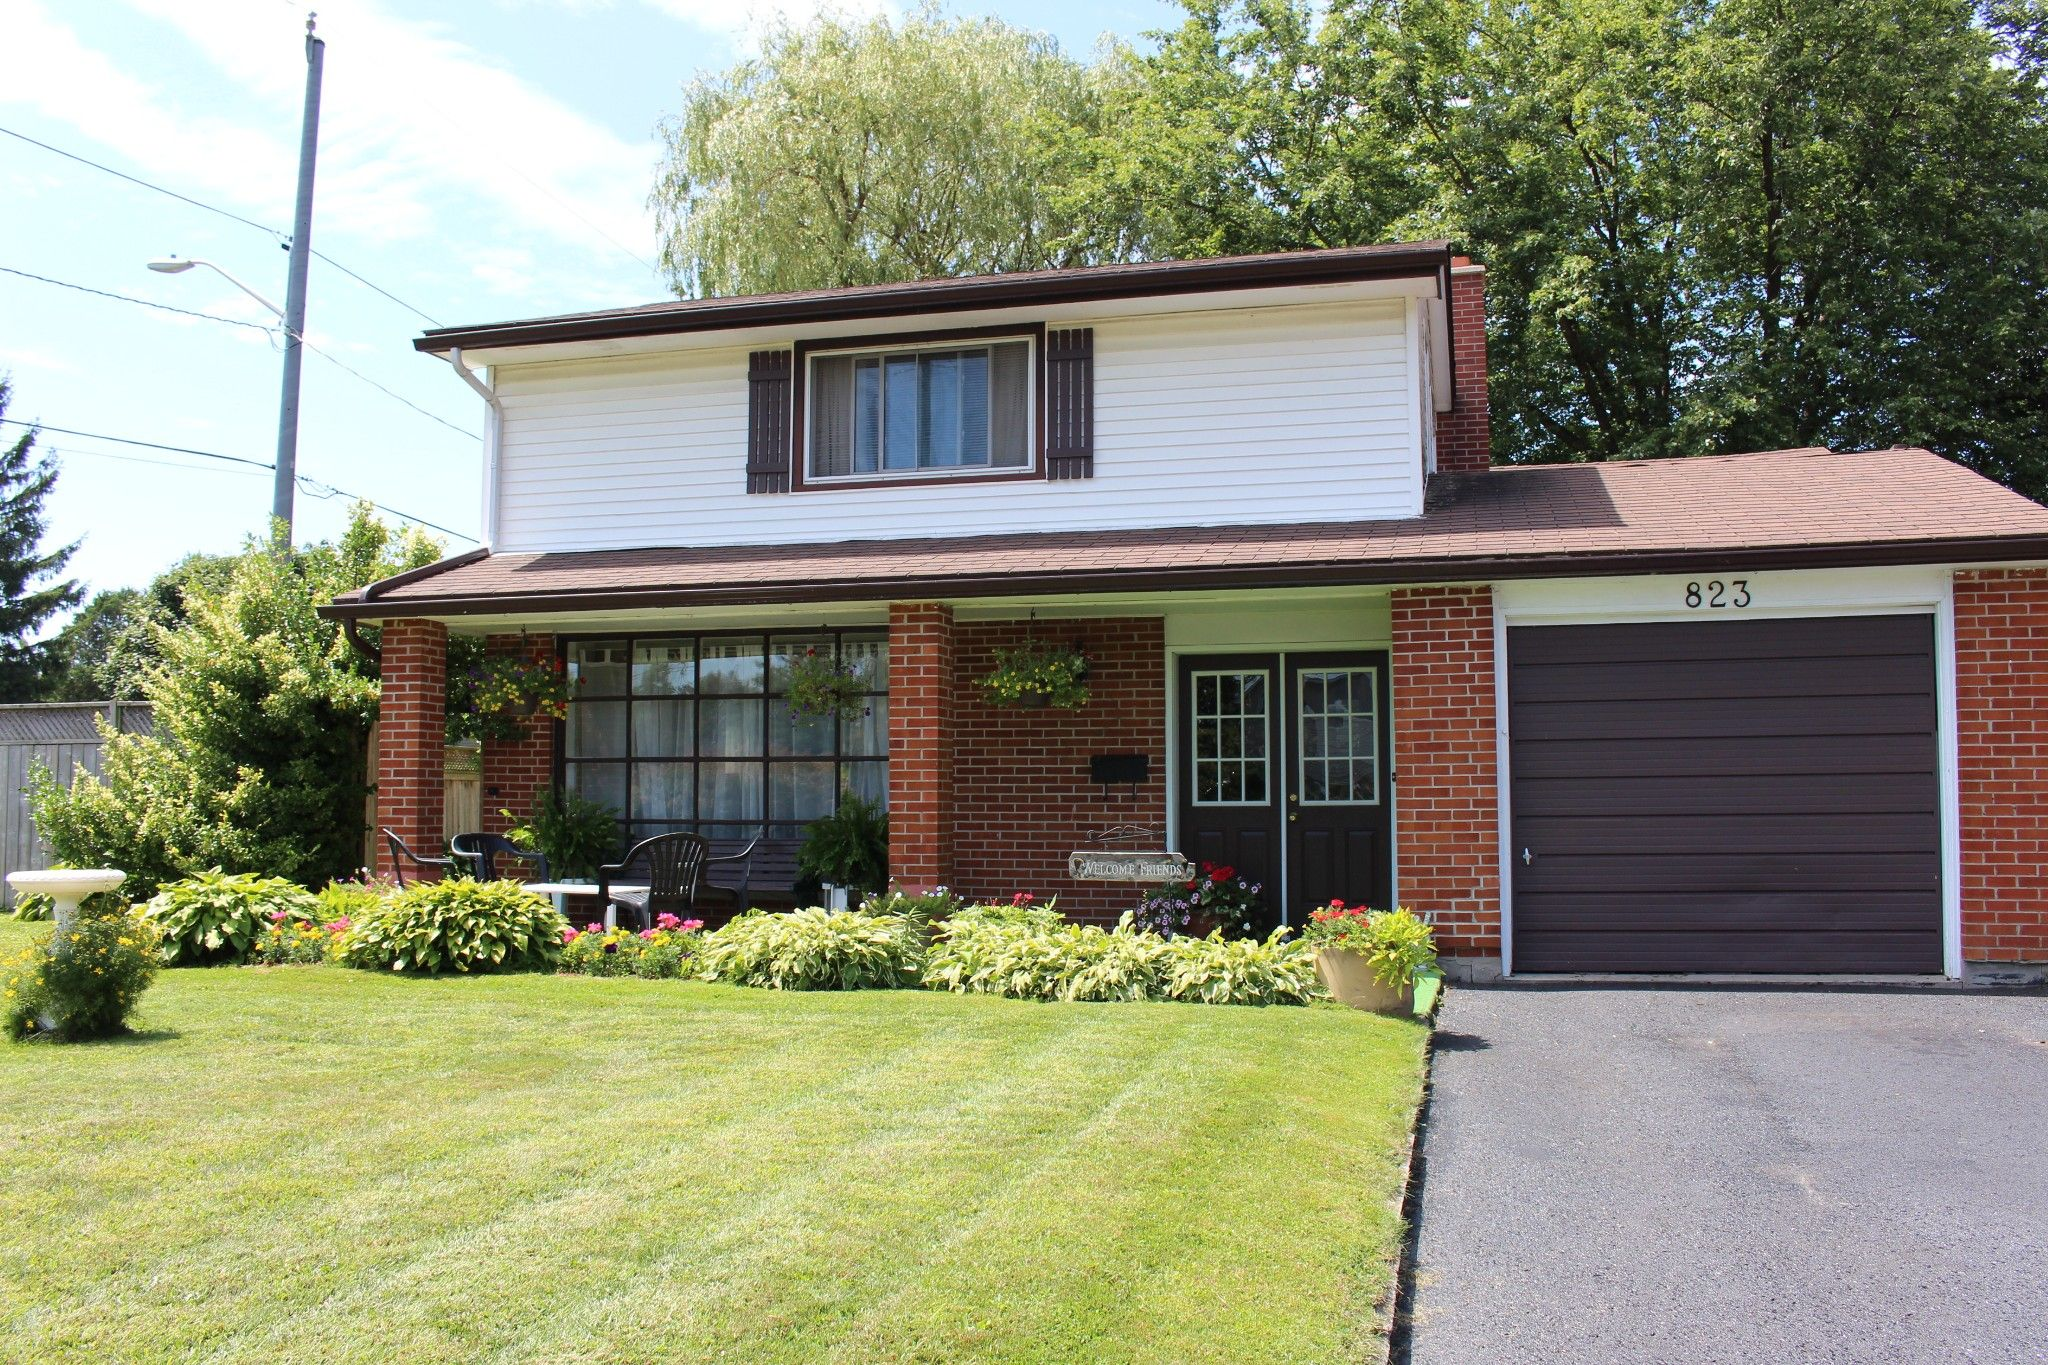 Main Photo: 823 Murray Crescent in Cobourg: House for sale : MLS®# 219861